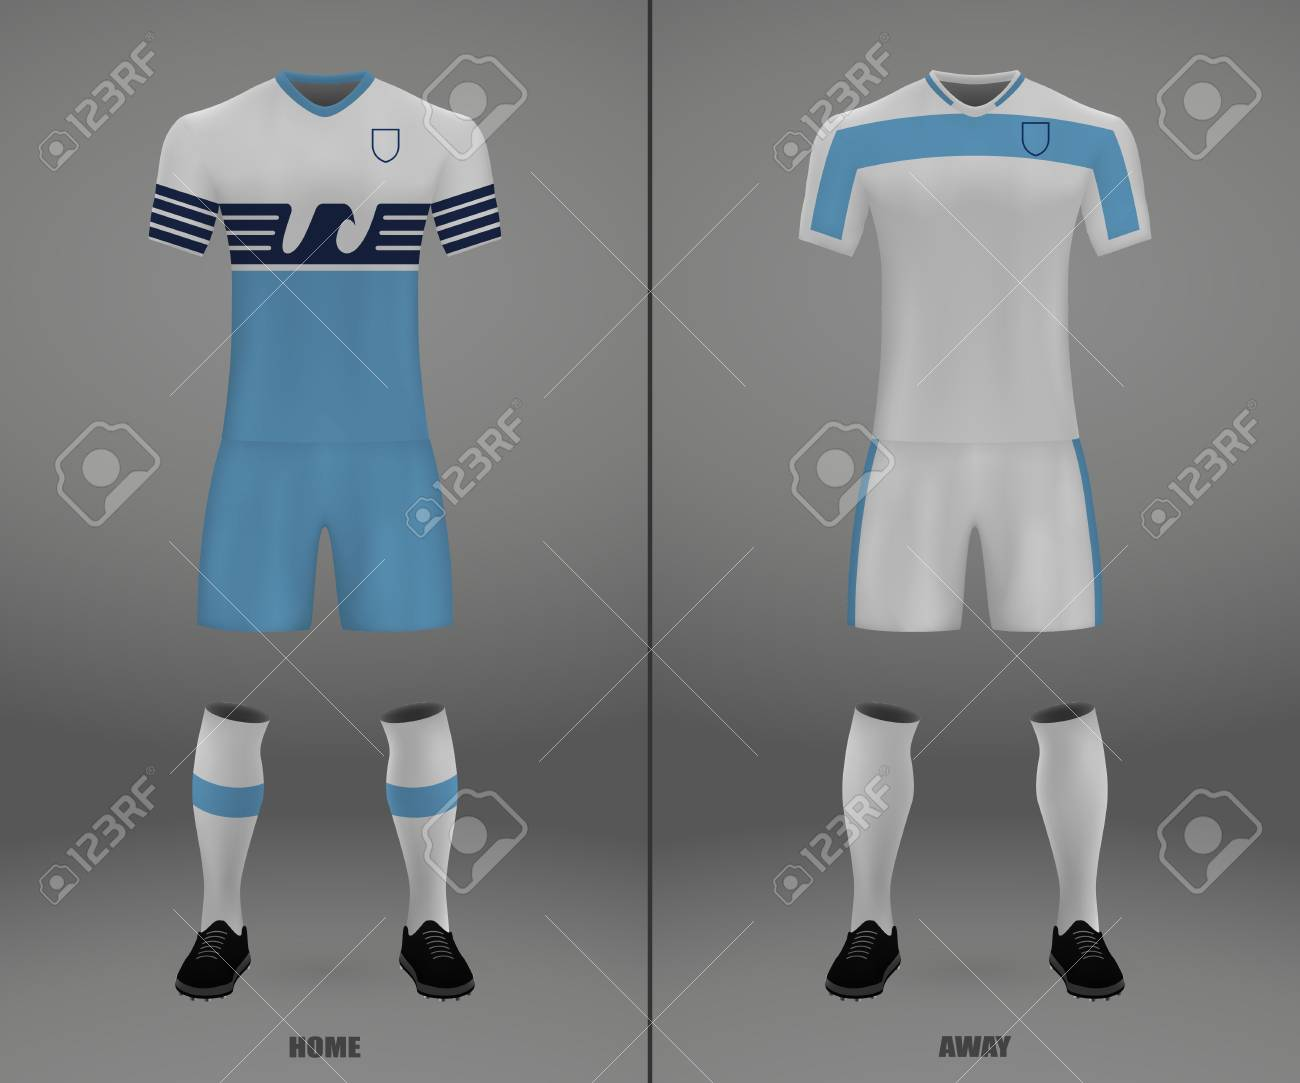 d8e45528b football kit Lazio 2018-19, shirt template for soccer jersey. Vector  illustration Stock